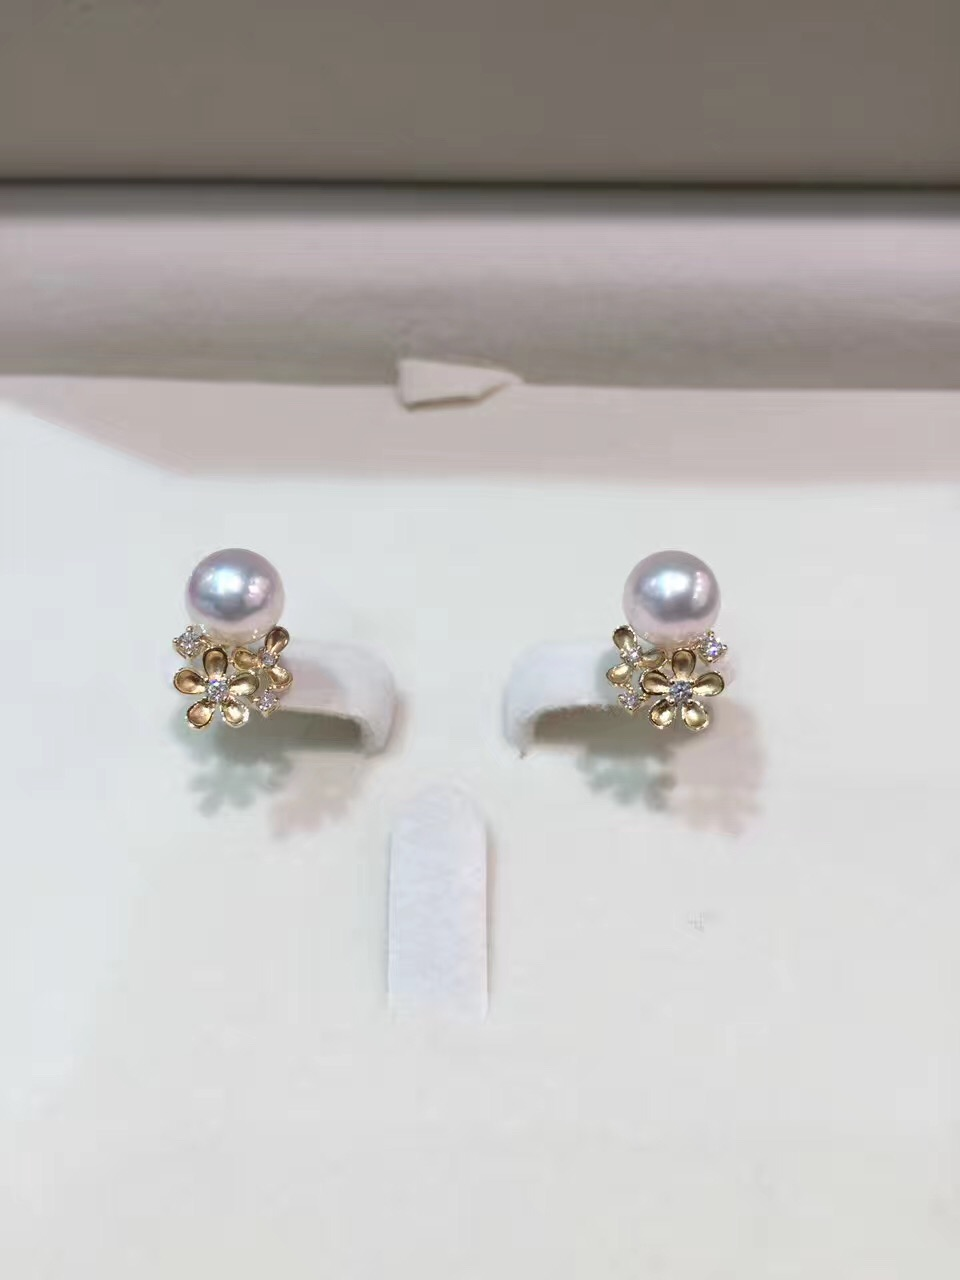 7-8MM  natural sea water pearl ring 18K gold with diamond flower stud earring akoya pearl fine jewelry  cute romantic